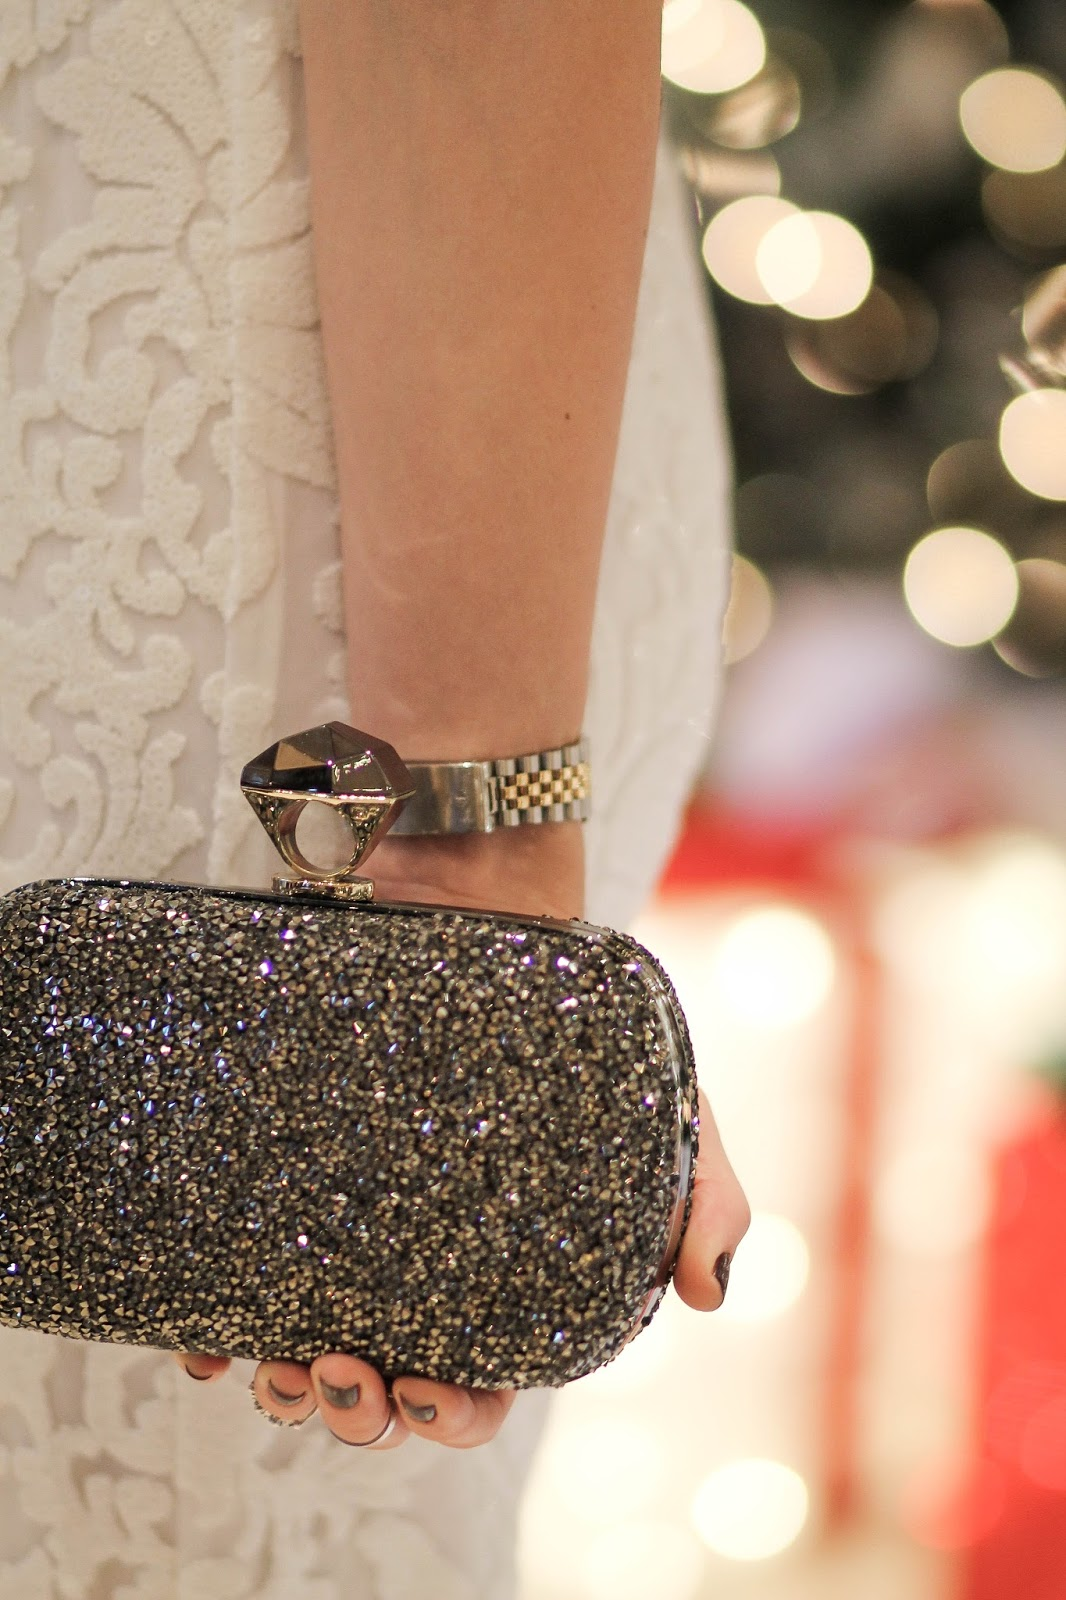 dvf crystal clutch, dressed for dreams